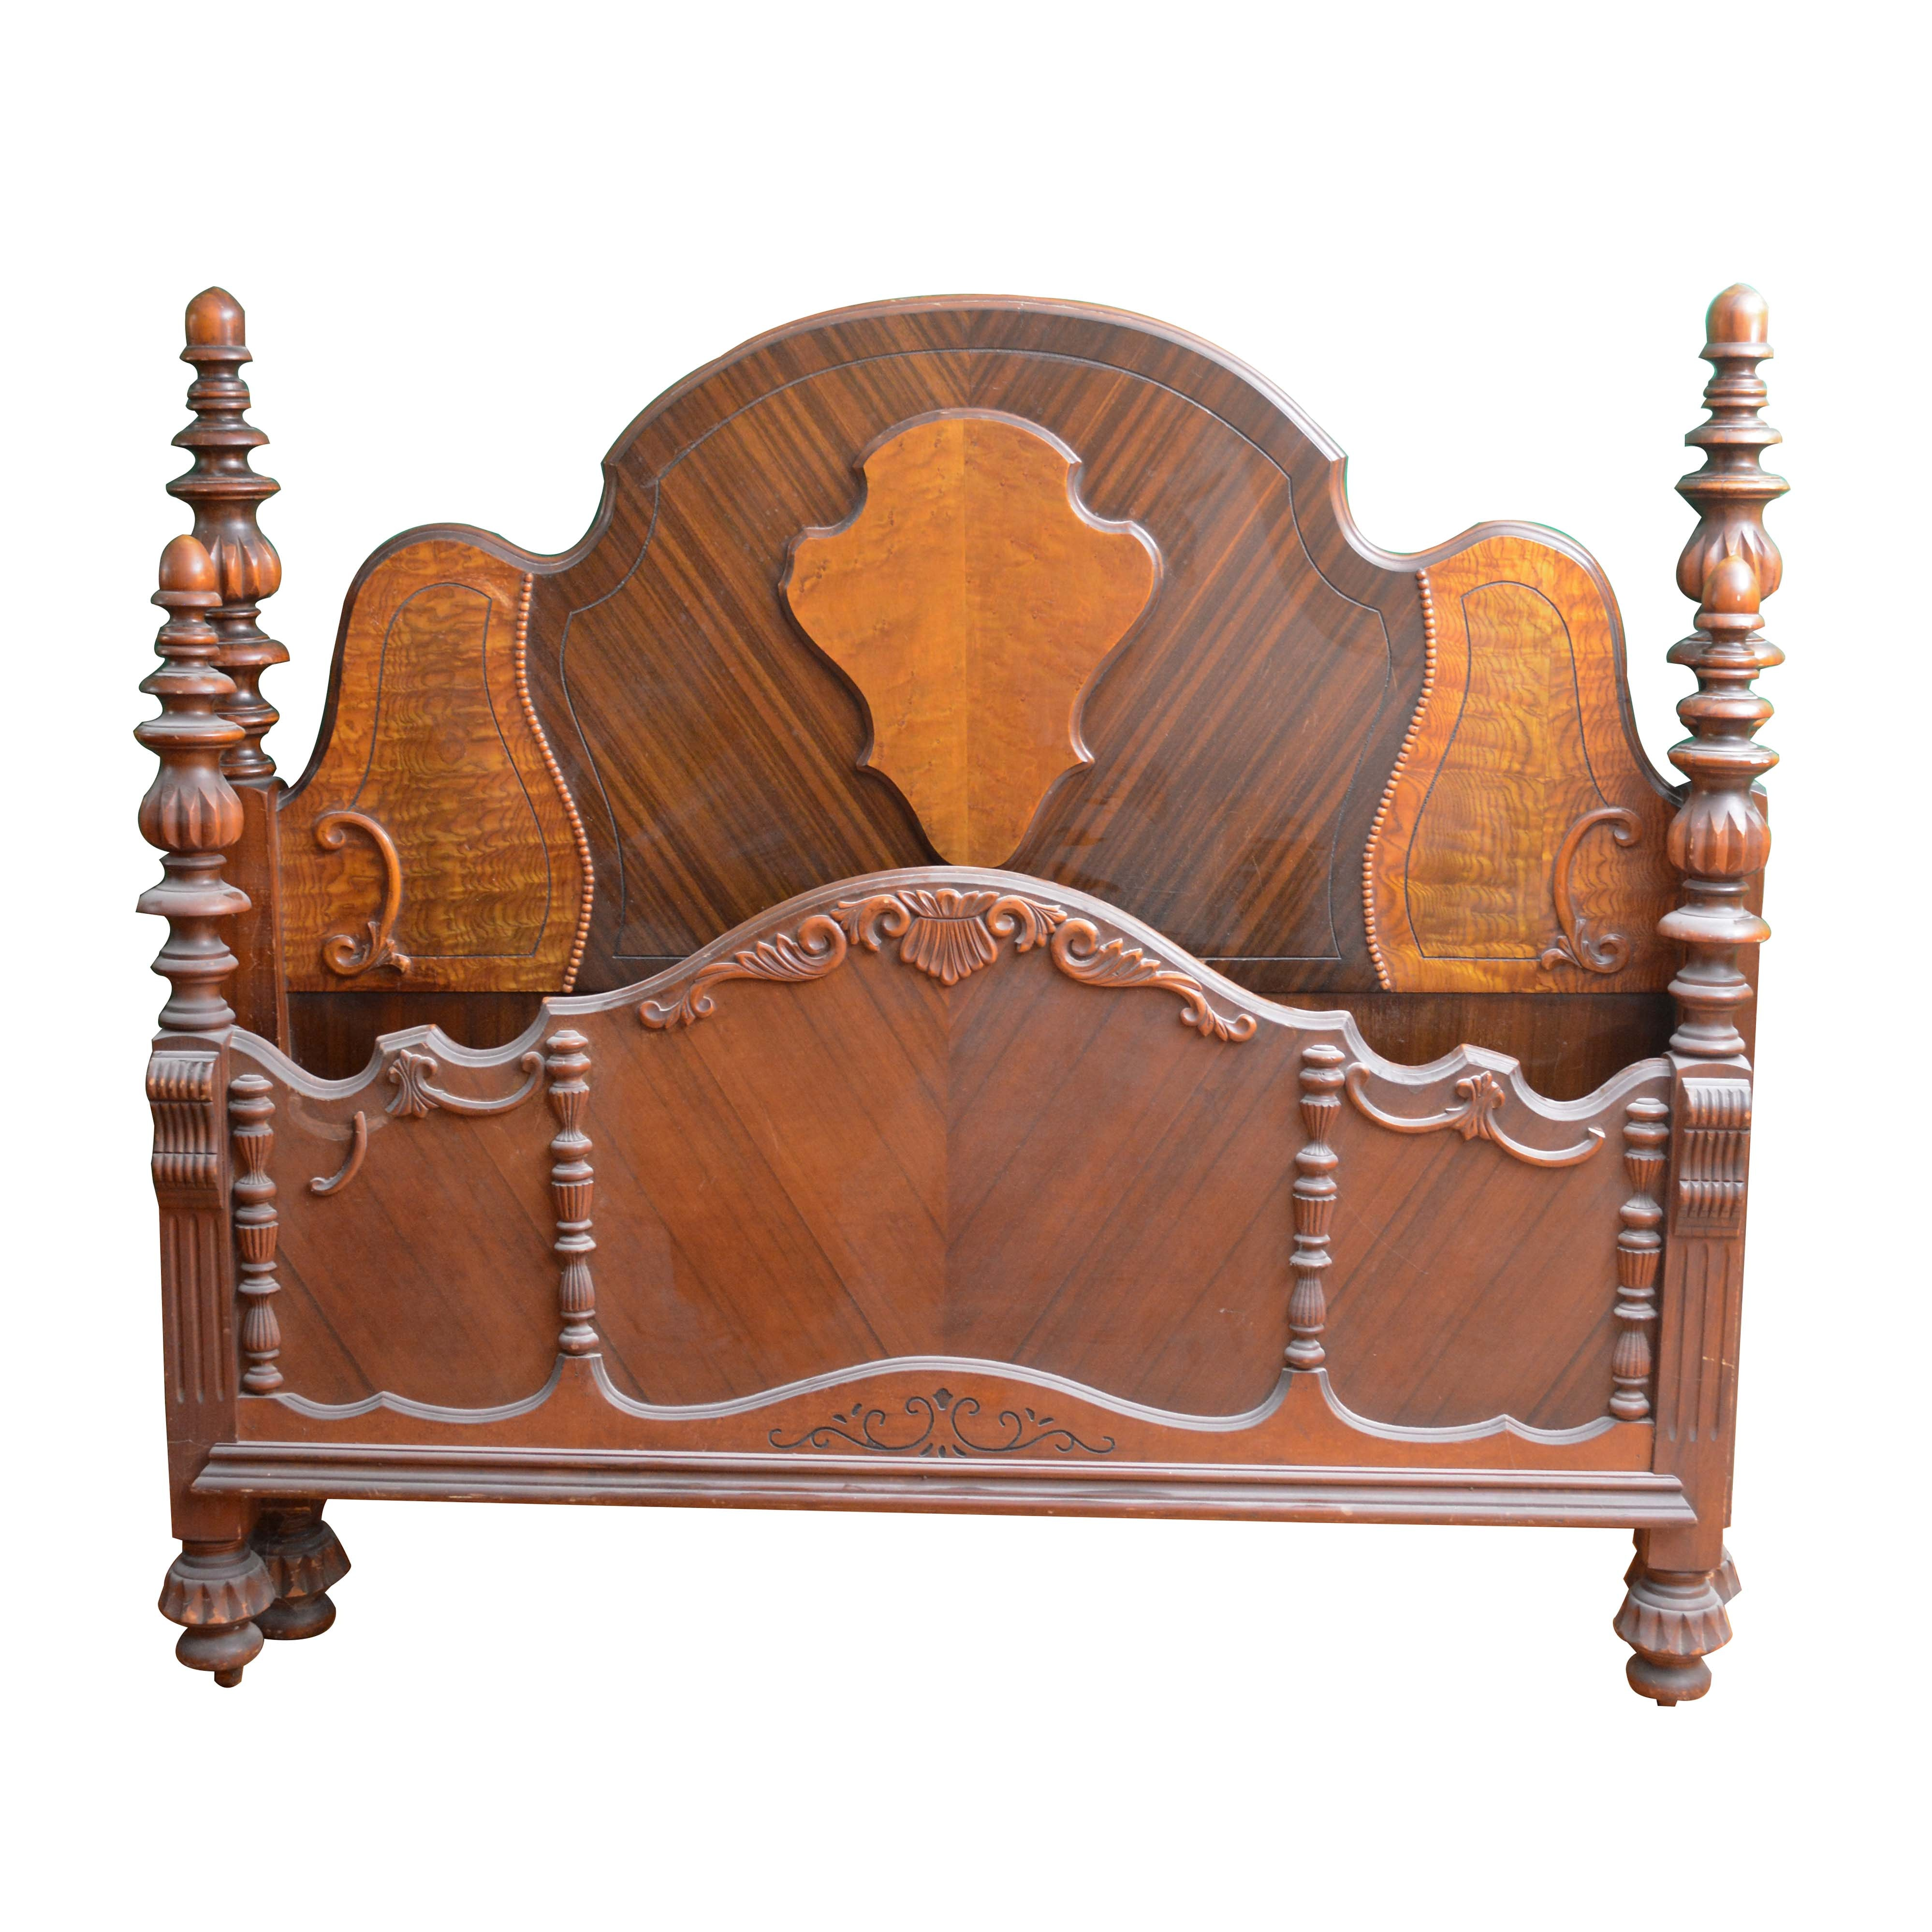 Jacobean Revival Style Full Size Headboard and Footboard, Early 20th Century